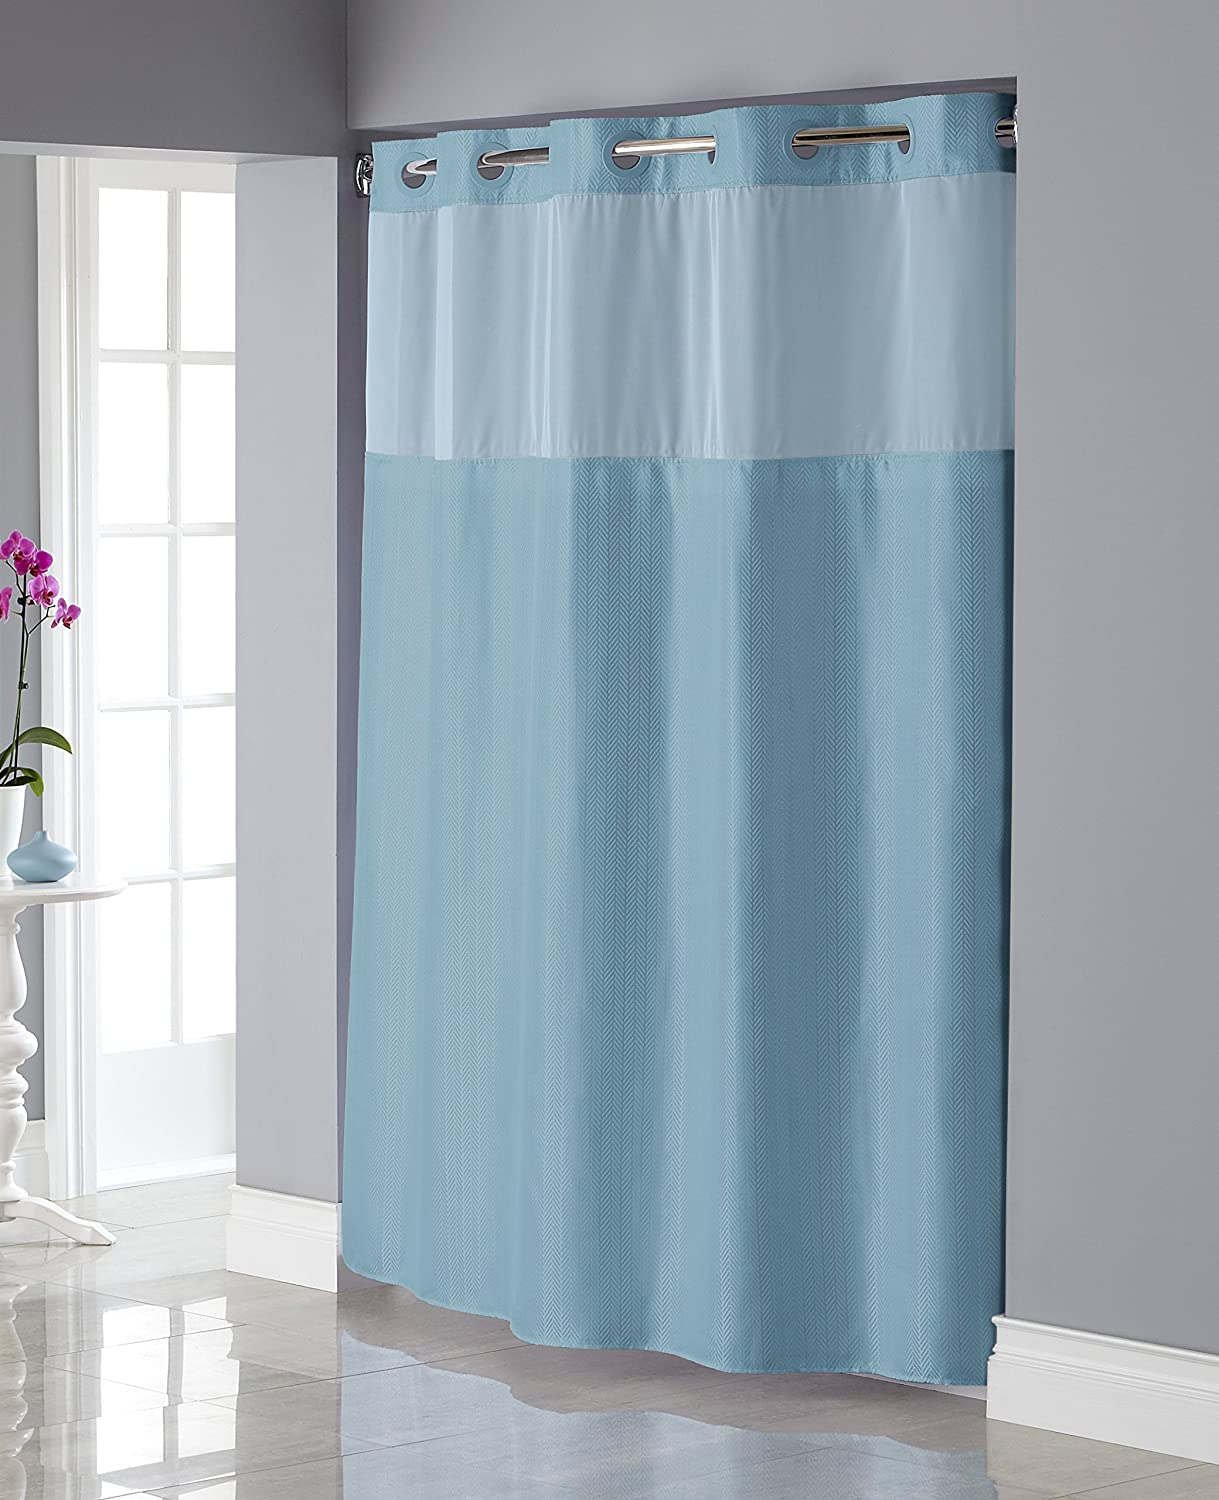 Green hookless shower curtain - Amazon Com Hookless Rbh34my837 Shiny Texture Herringbone Shower Curtain With Snap In Peva Liner Crystal Blue Home Kitchen